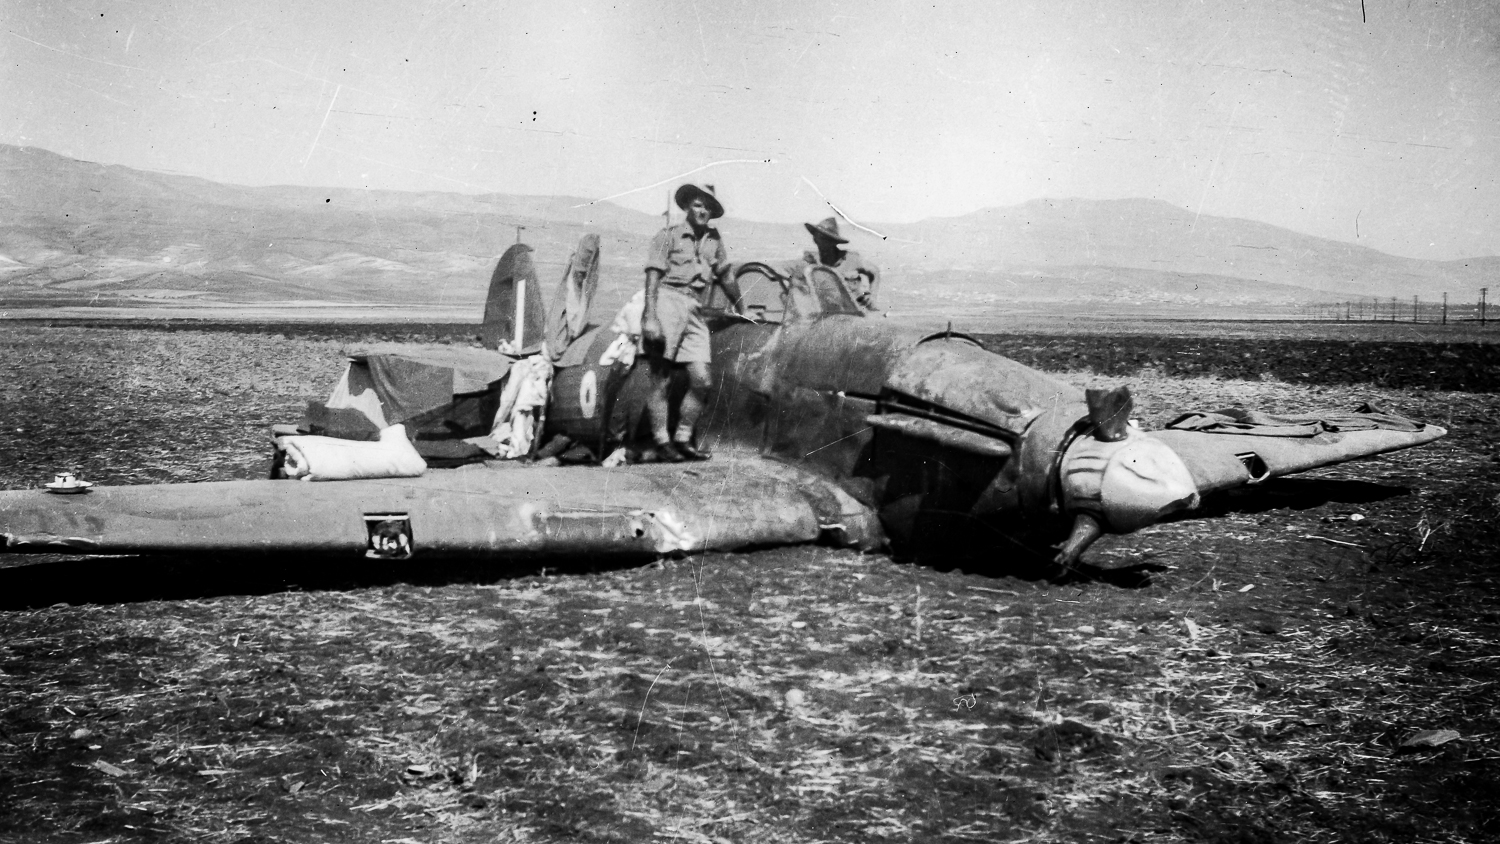 crashed Hurricane in the desert